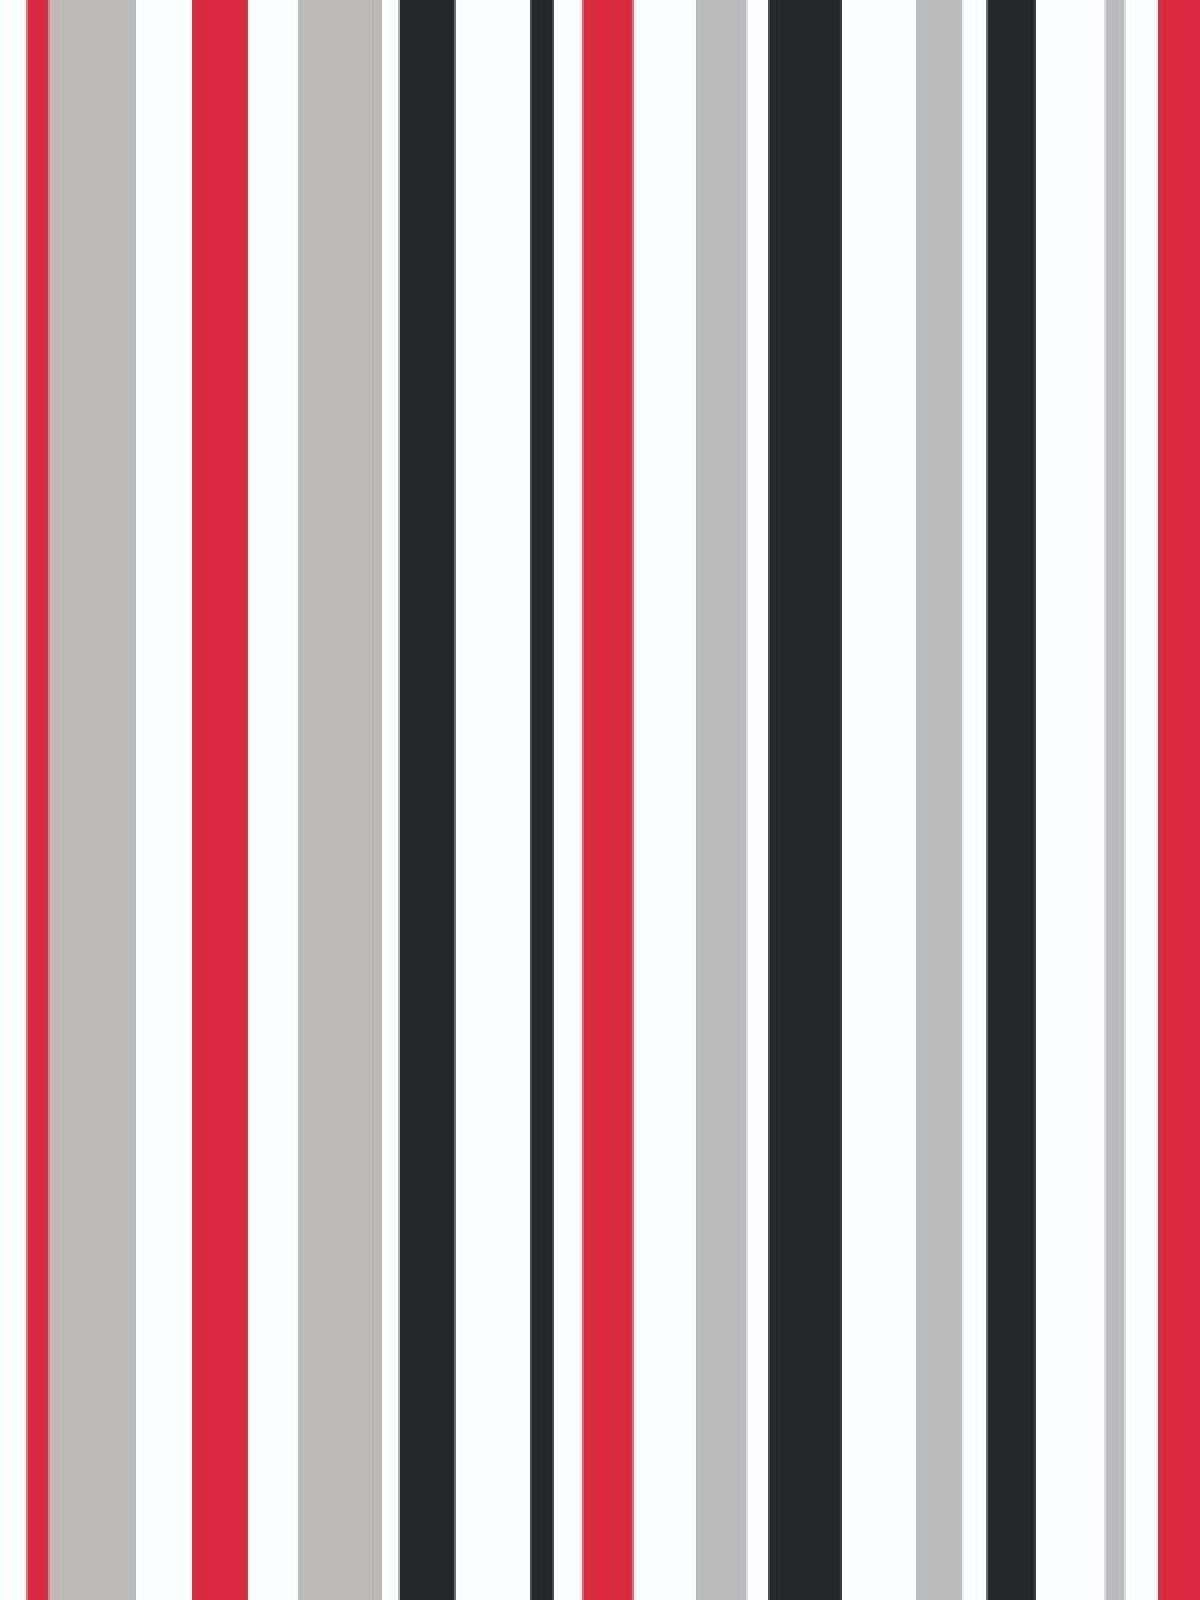 Xmas black and white on pinterest red black knit for Black white and grey wallpaper